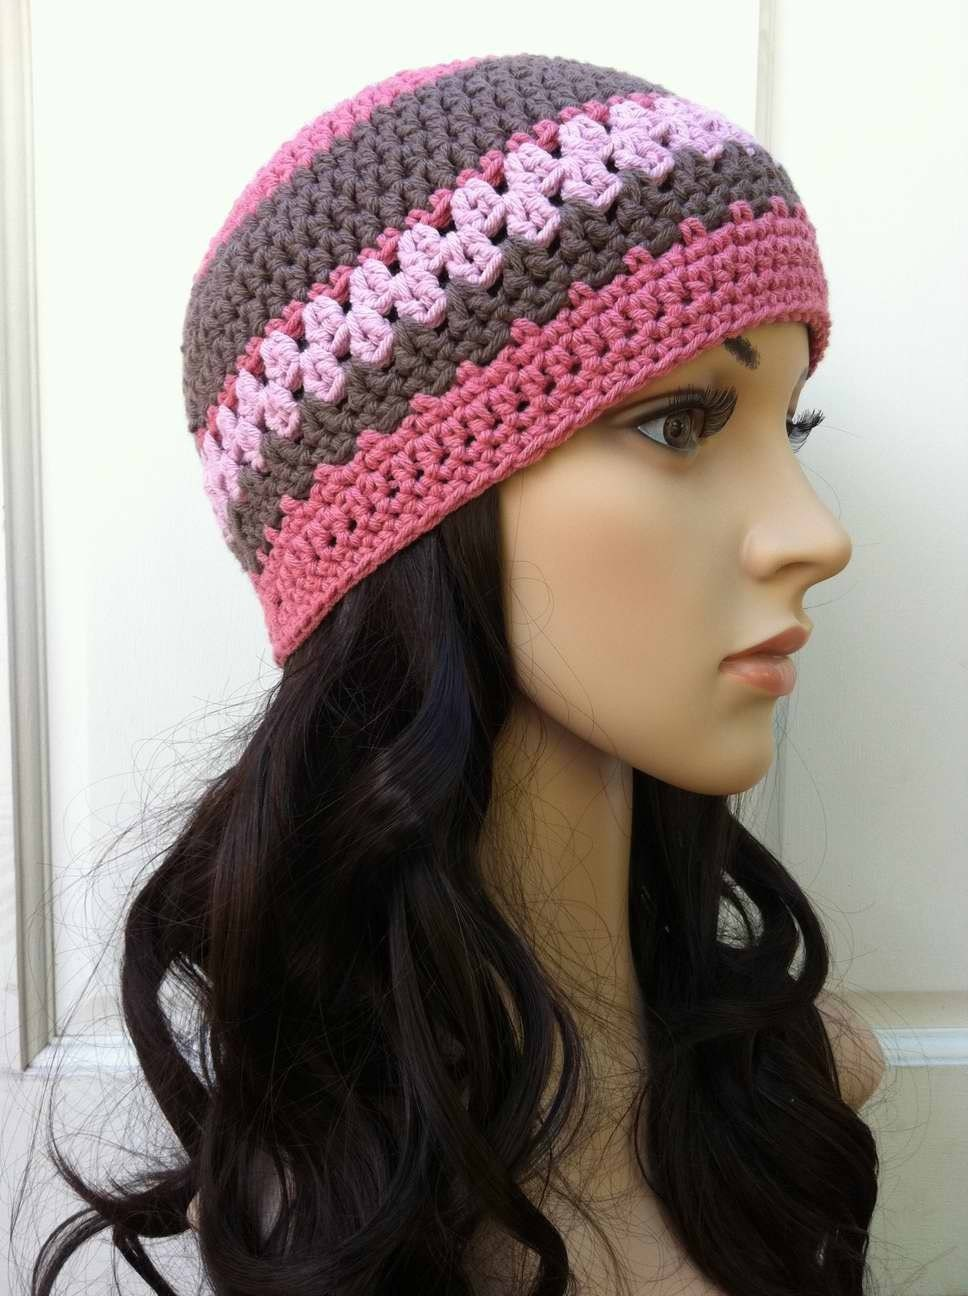 CROCHET HATS FOR WOMEN How To Crochet